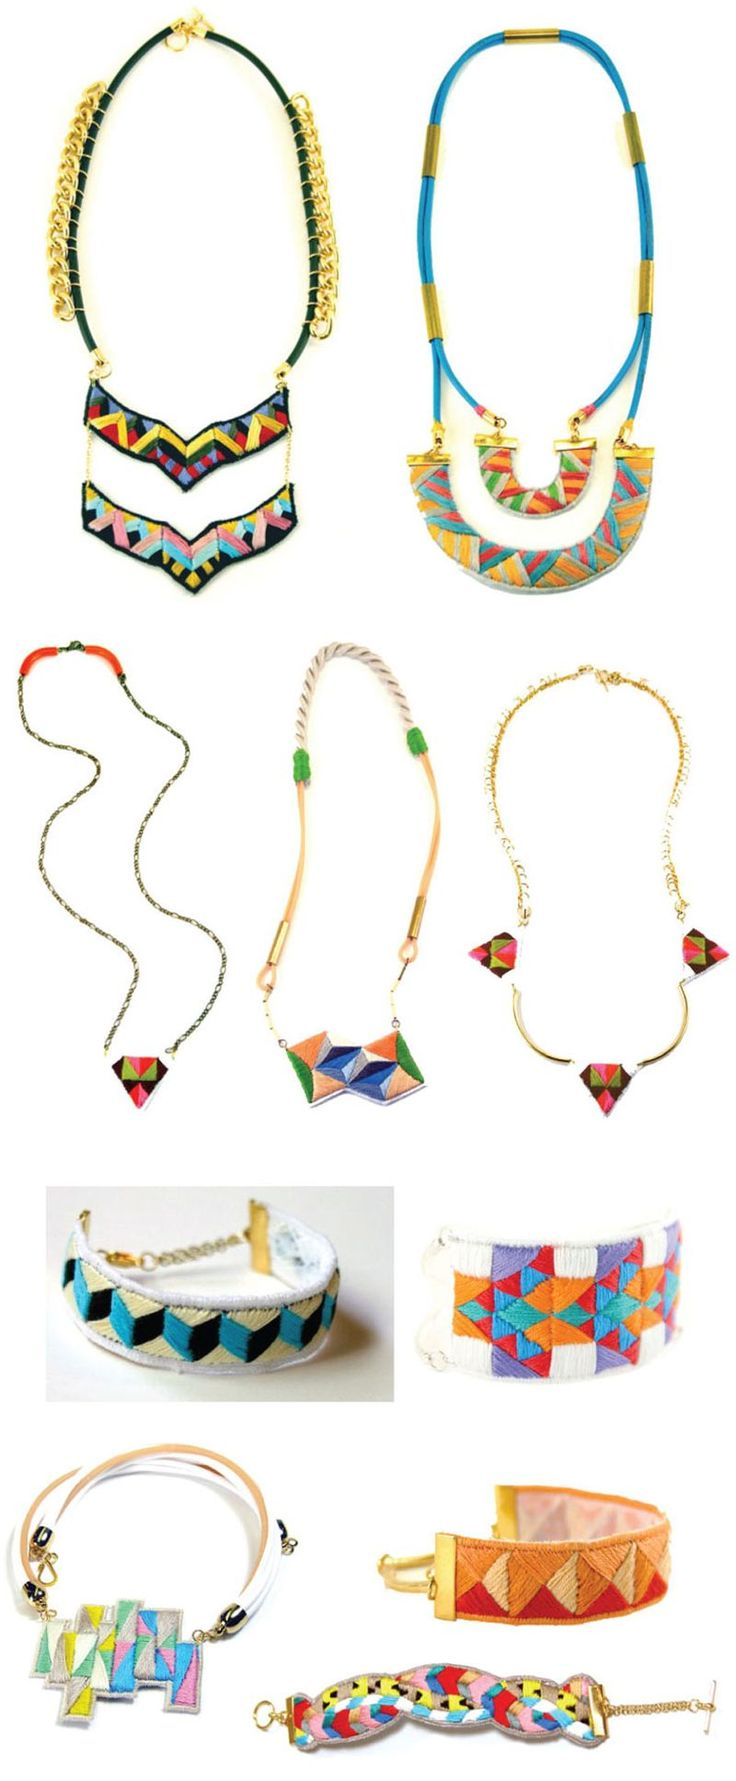 Hand embroidered jewelry by Lorena Marañón.